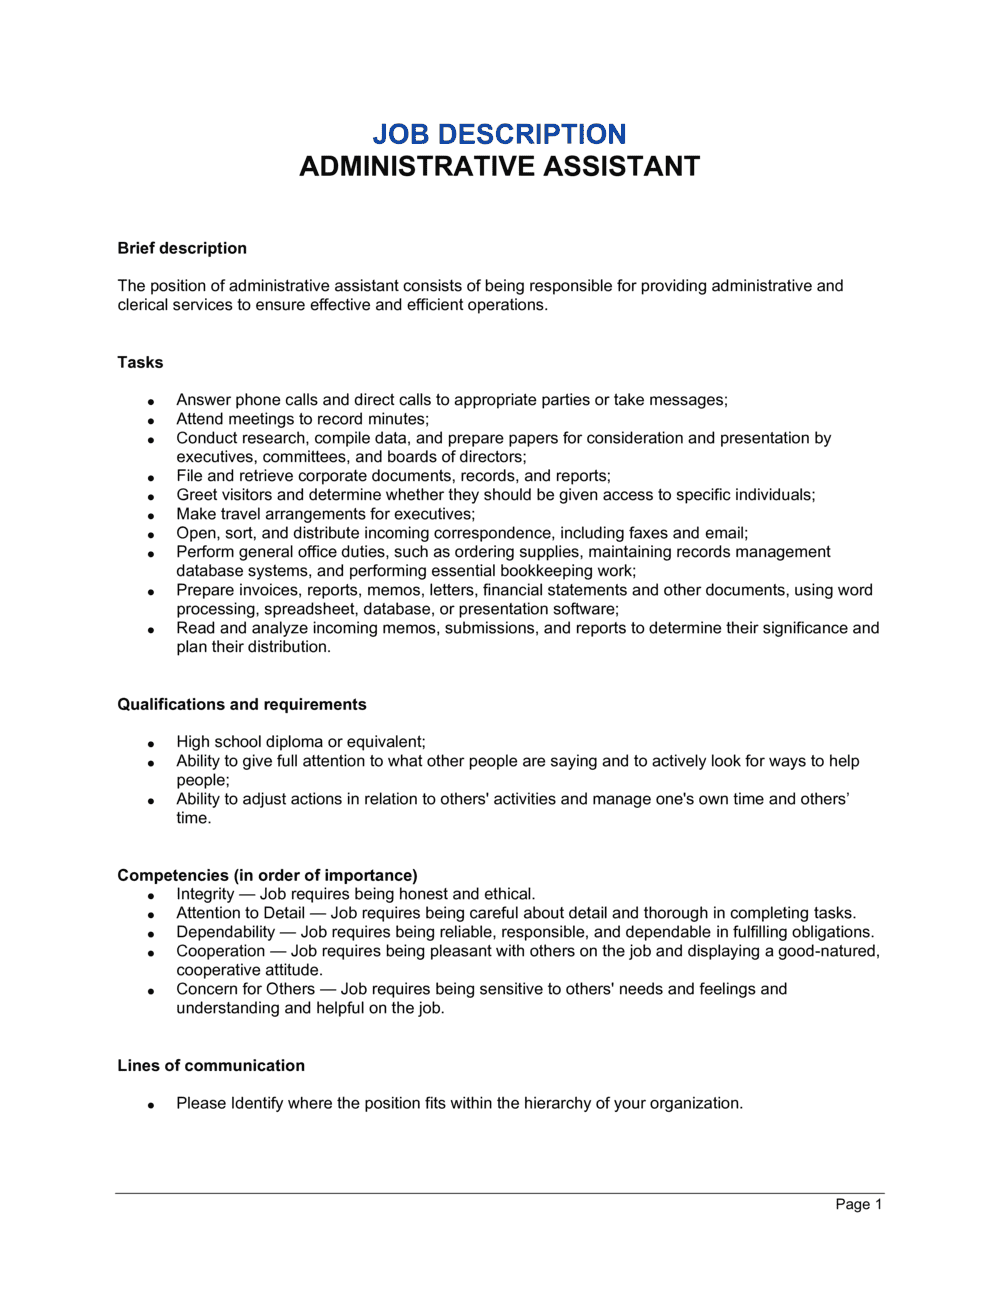 Business-in-a-Box's Administrative Assistant Job Description Template